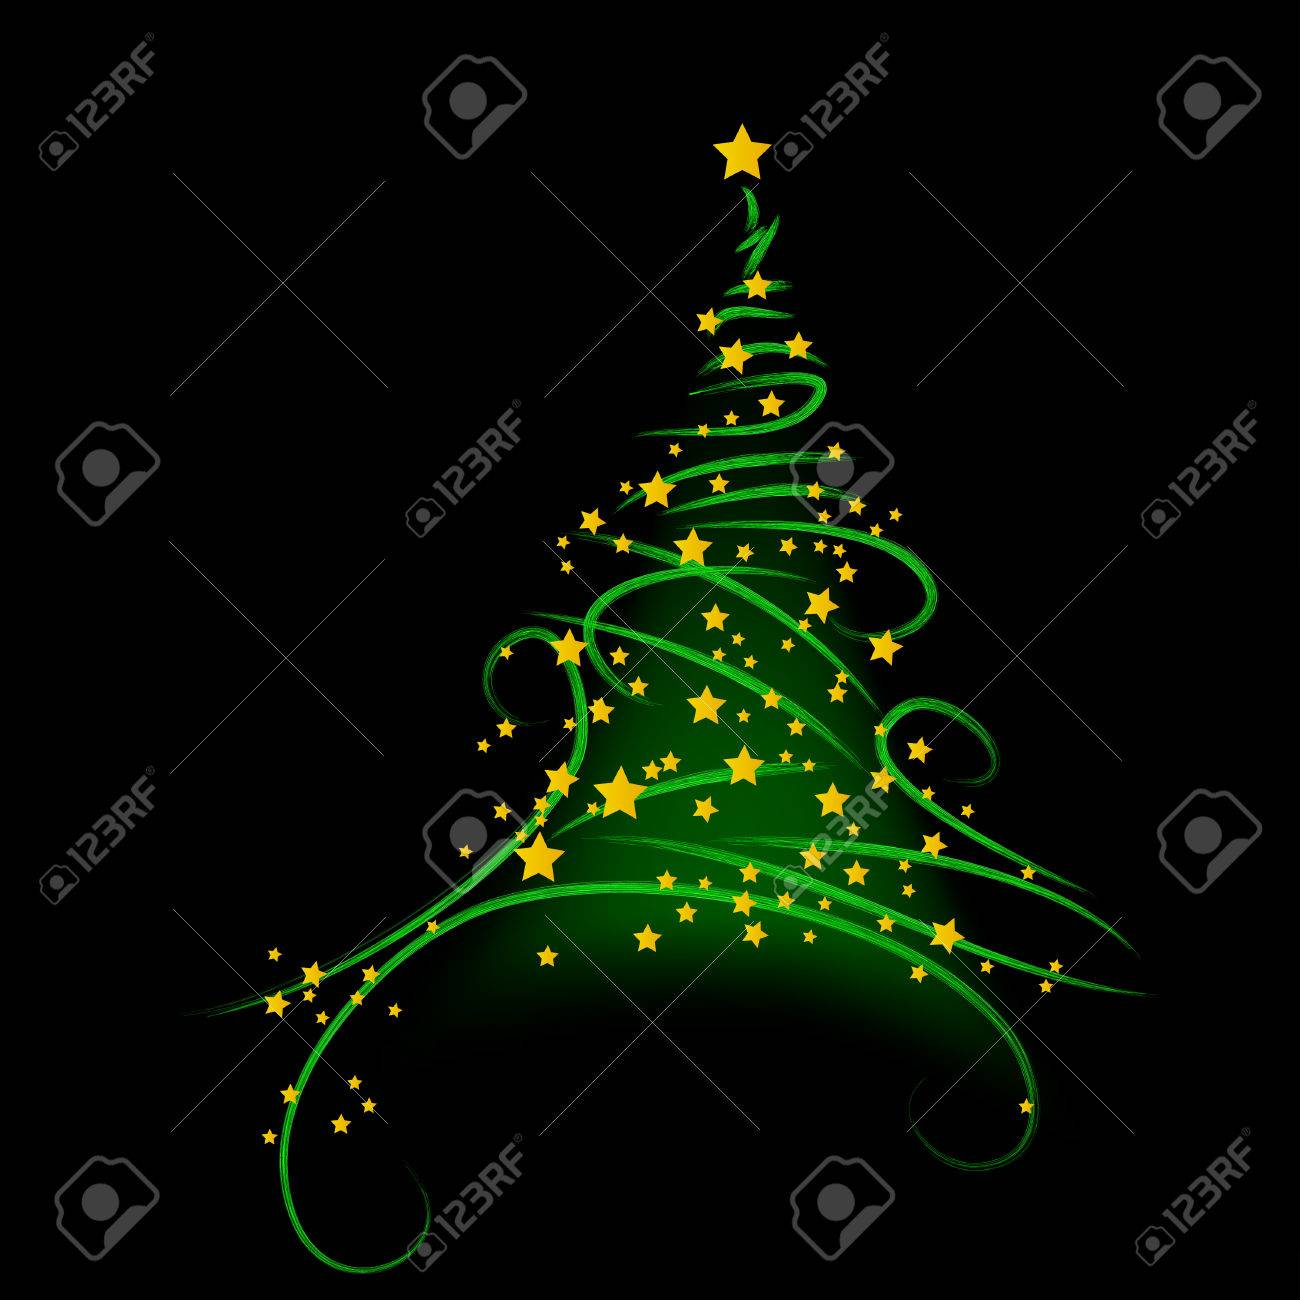 Christmas background, tree - vector illustration Stock Vector - 5657945